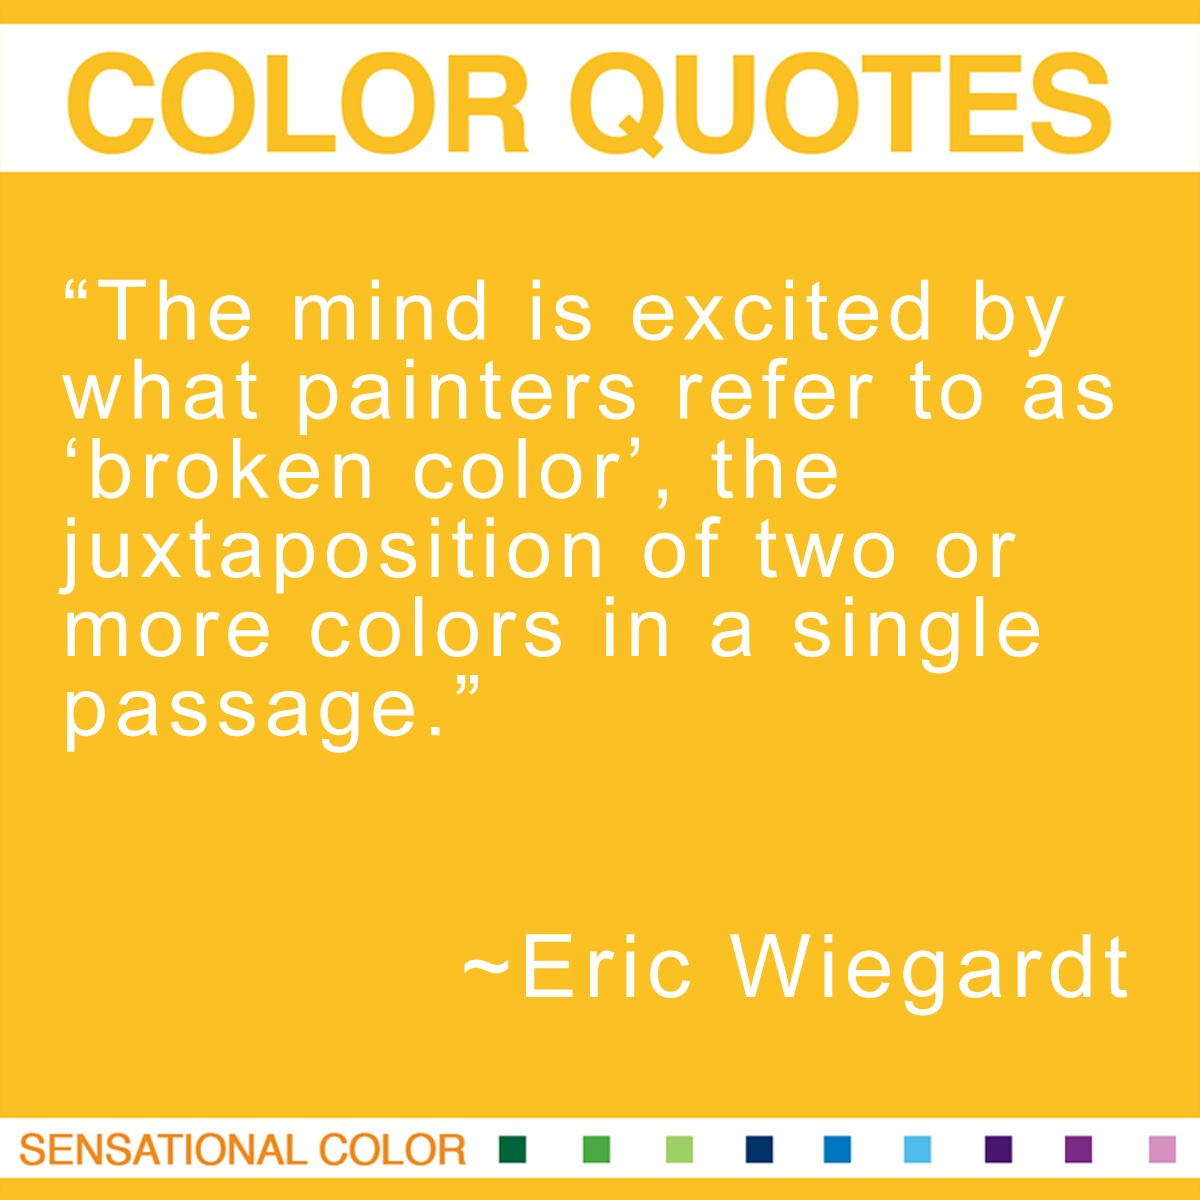 """The mind is excited by what painters refer to as 'broken color', the juxtaposition of two or more colors in a single passage."" - Eric Wiegardt"